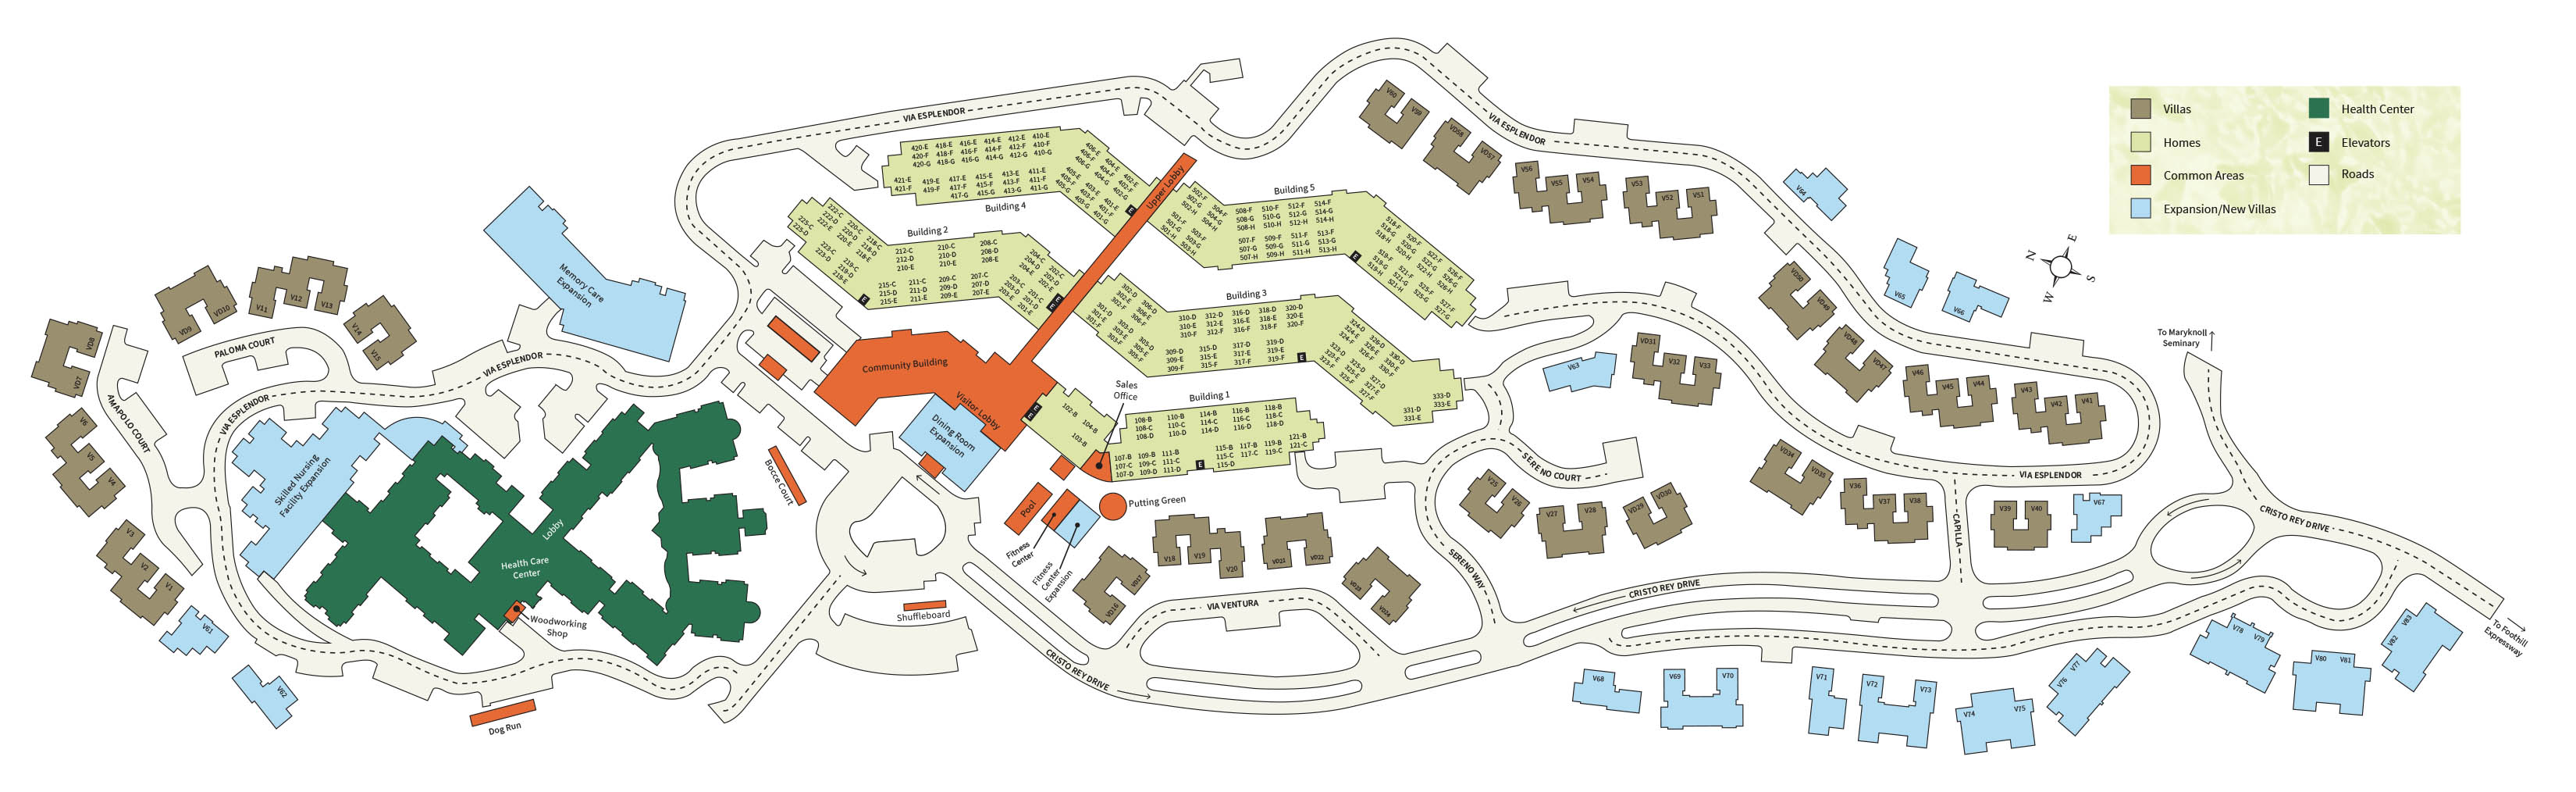 The Forum Senior Living Floor Plans